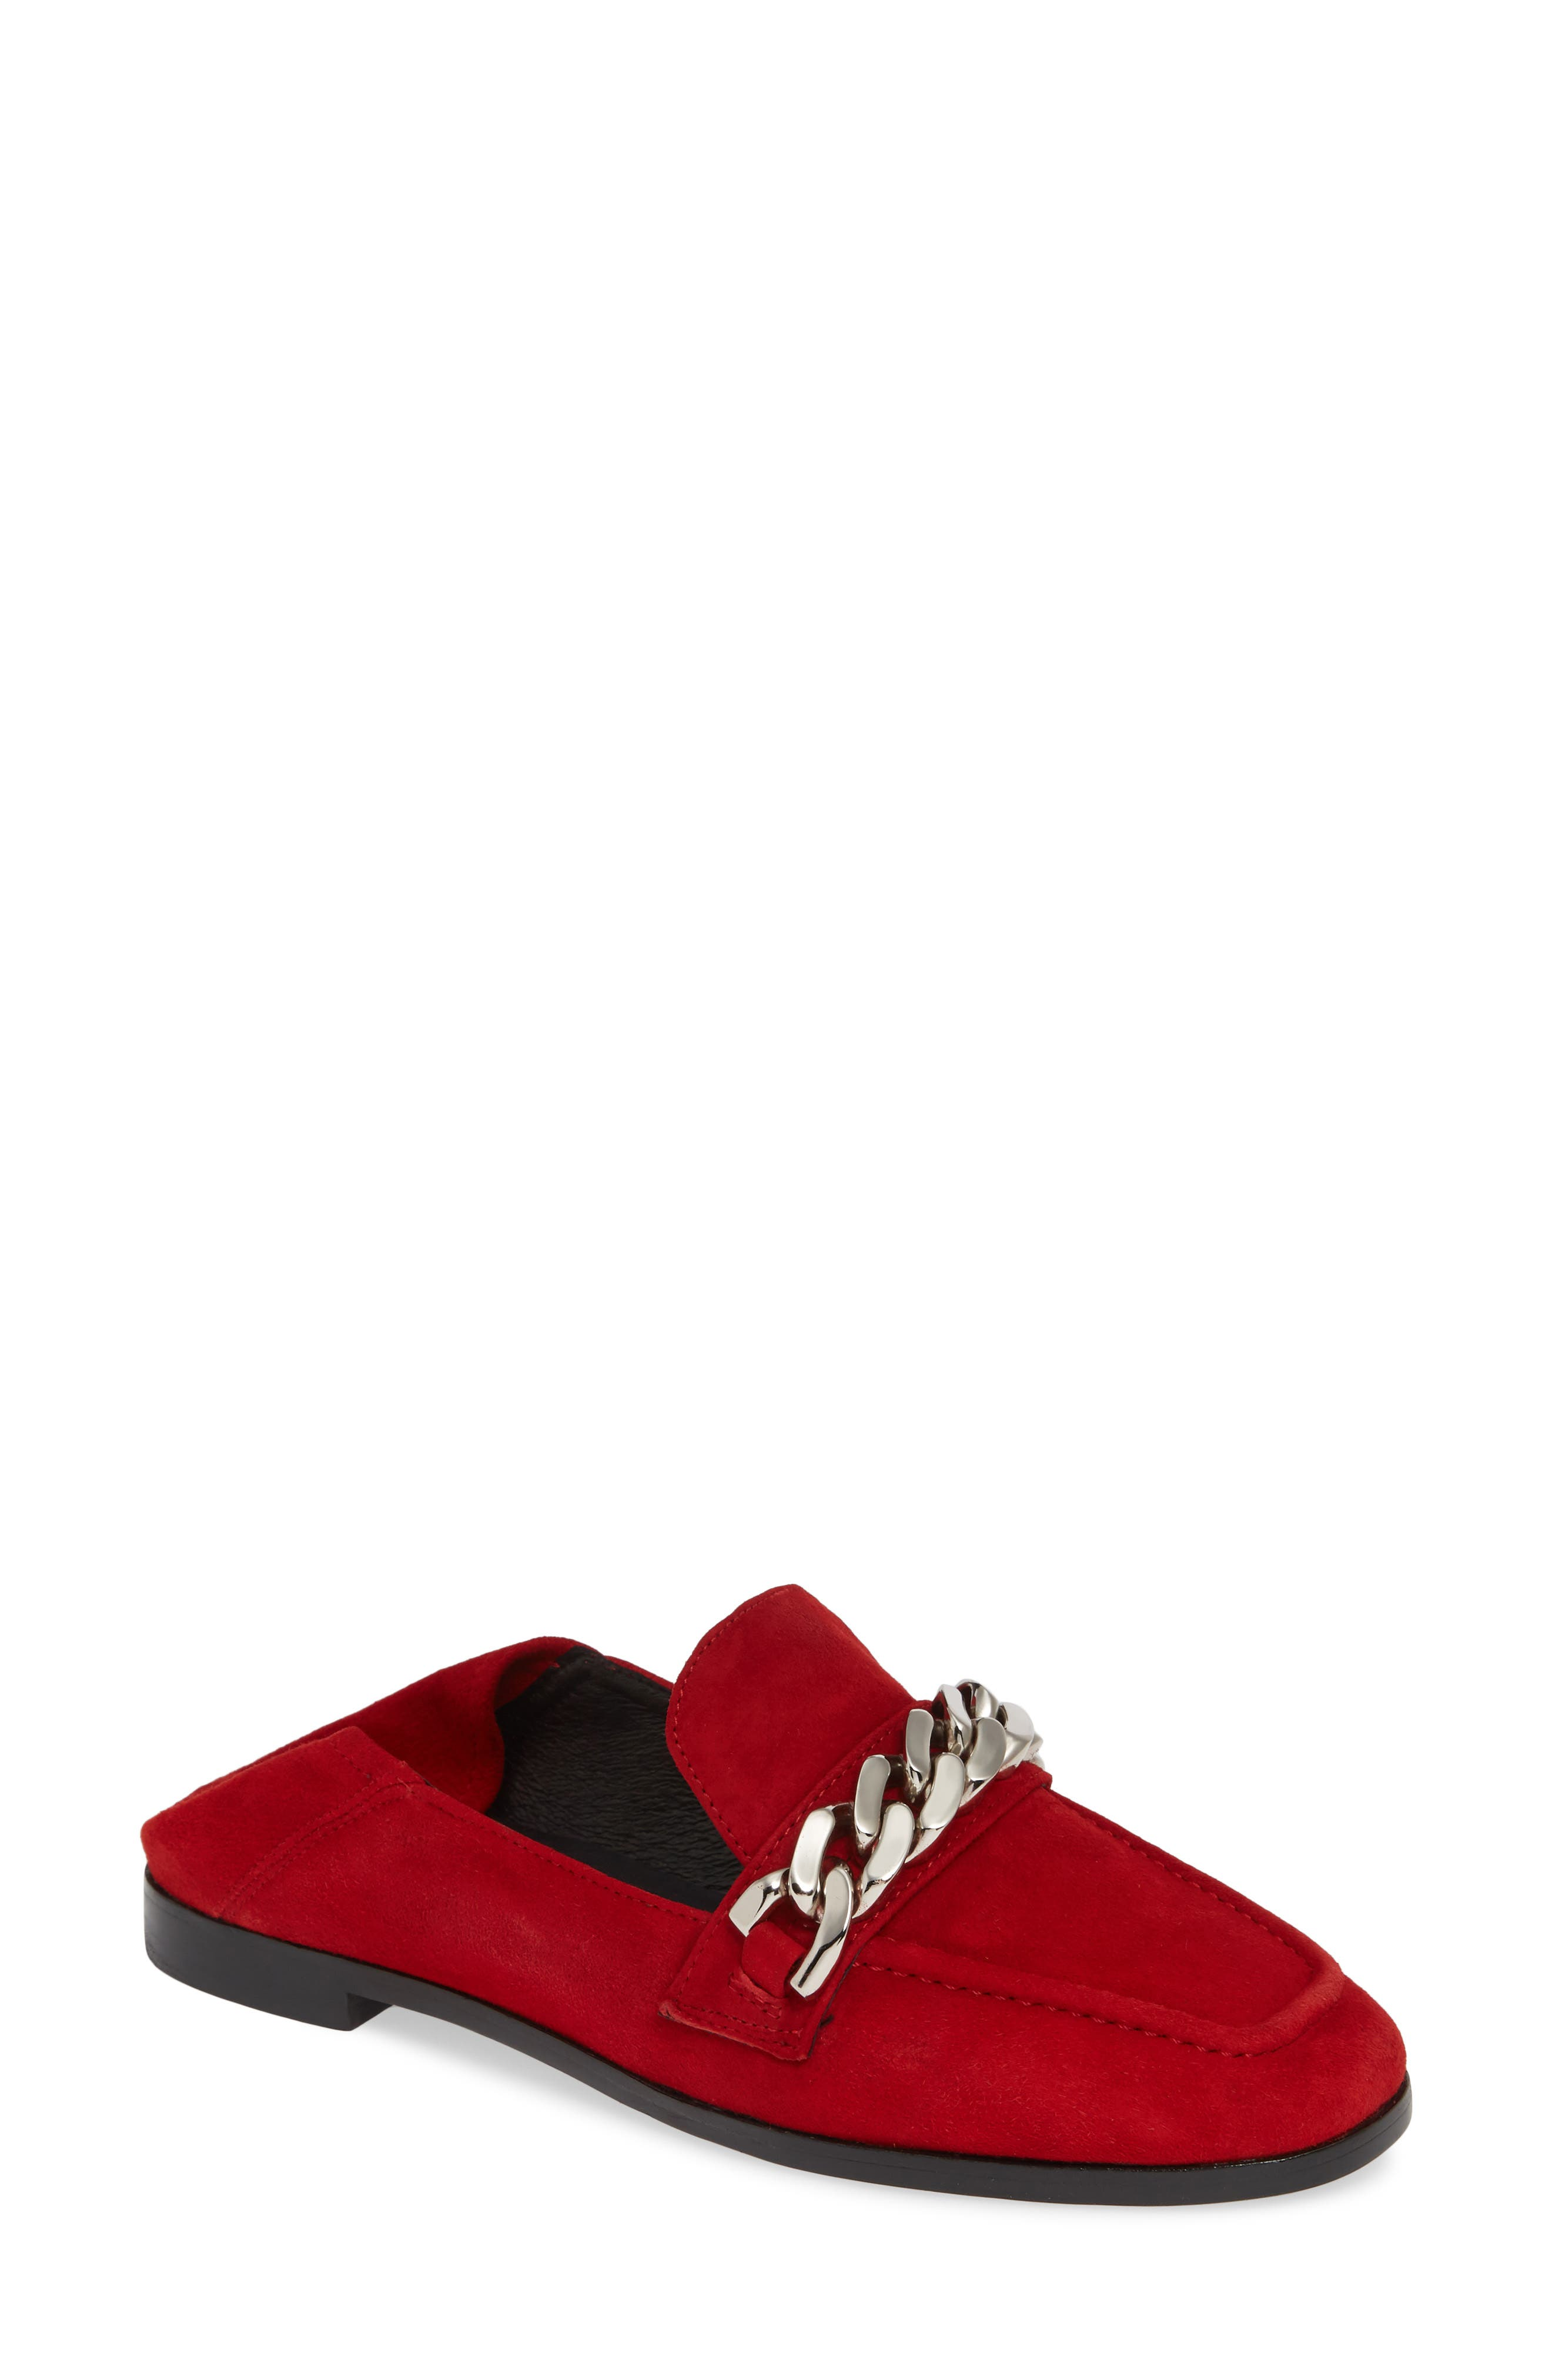 Jesse Convertible Heel Loafer,                             Main thumbnail 1, color,                             RED SUEDE SILVER